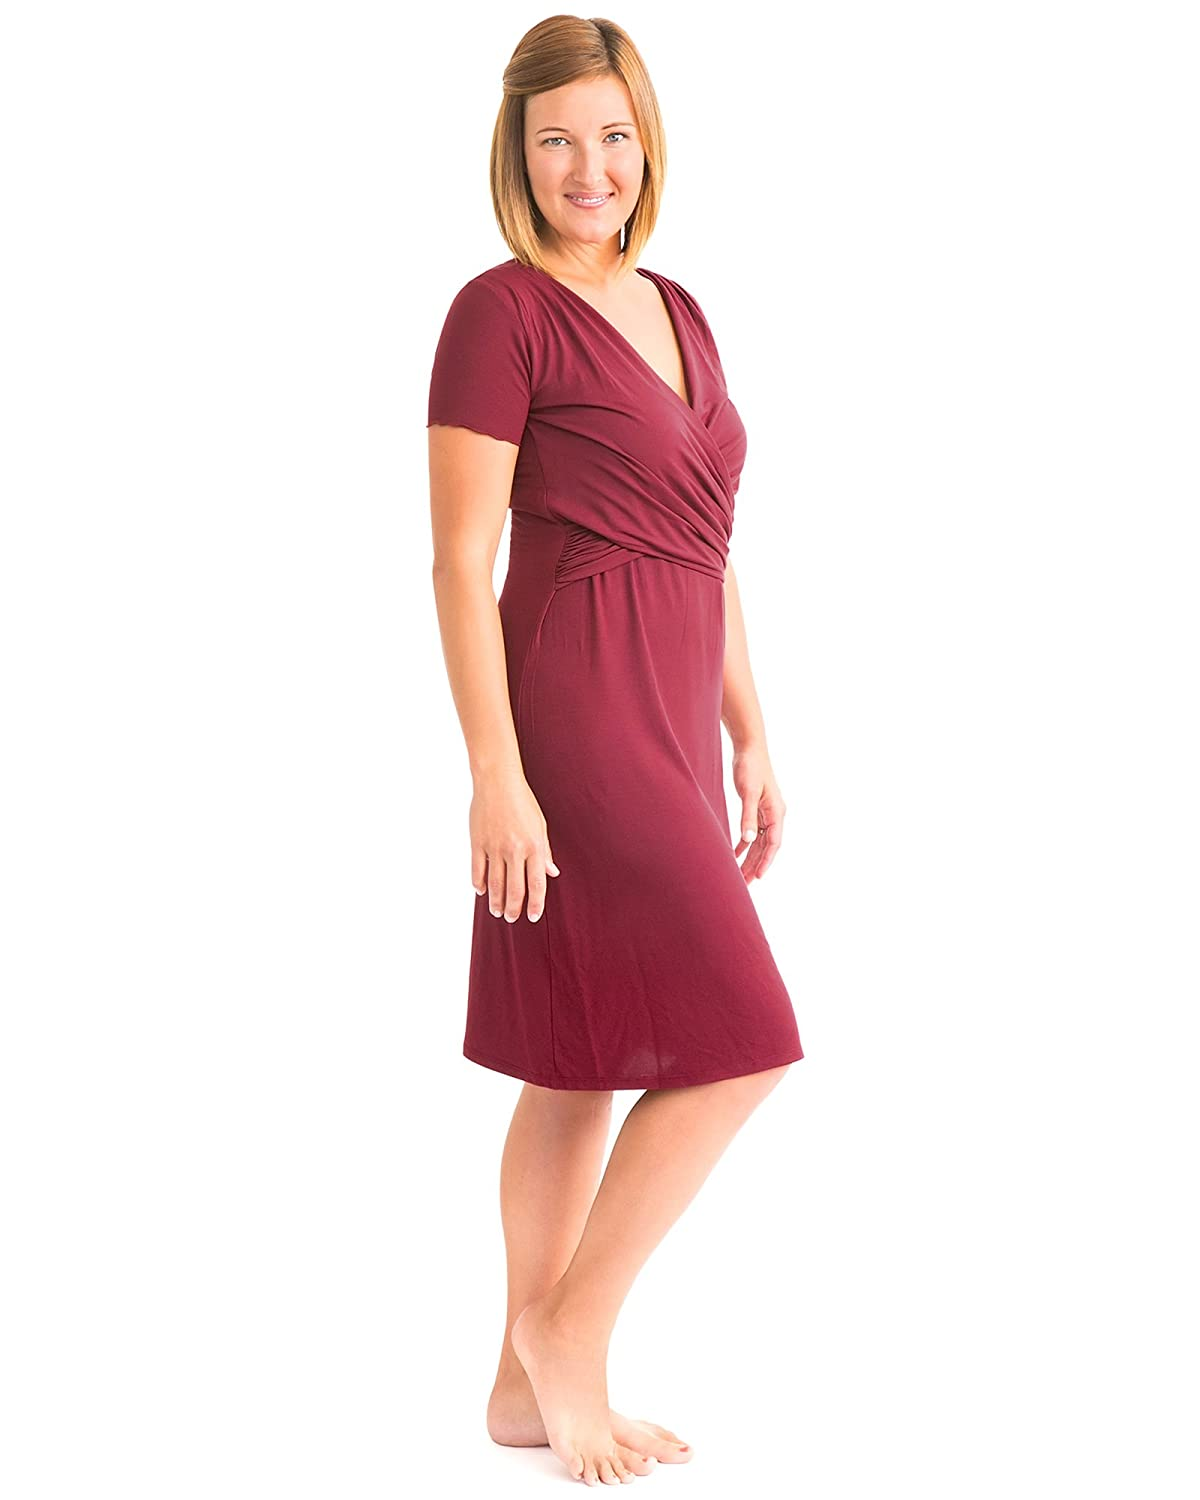 Kindred Bravely Angelina Ultra Soft Maternity & Nursing Nightgown ...